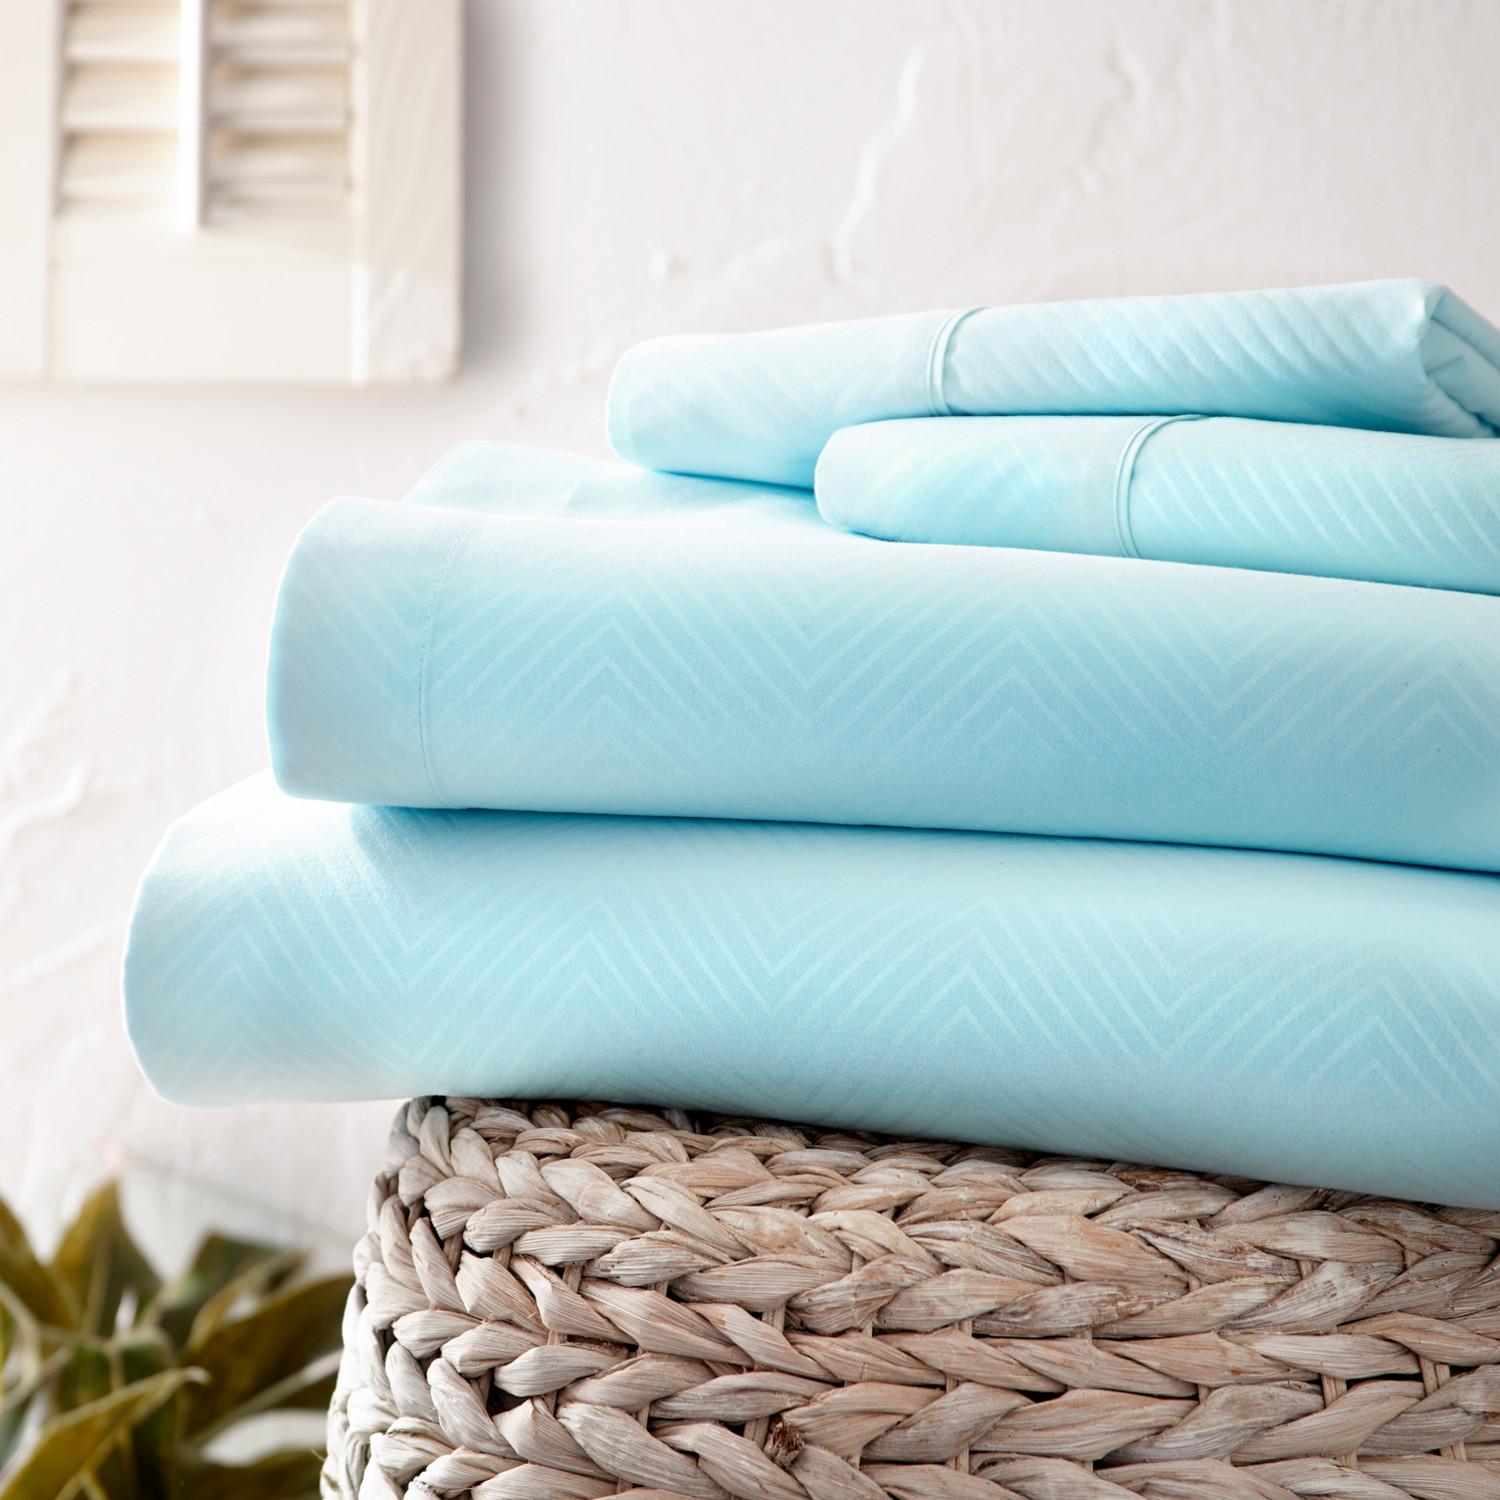 Urban Loft™ Luxury Soft Chevron Bed Sheets // 4 Piece Set // Aqua